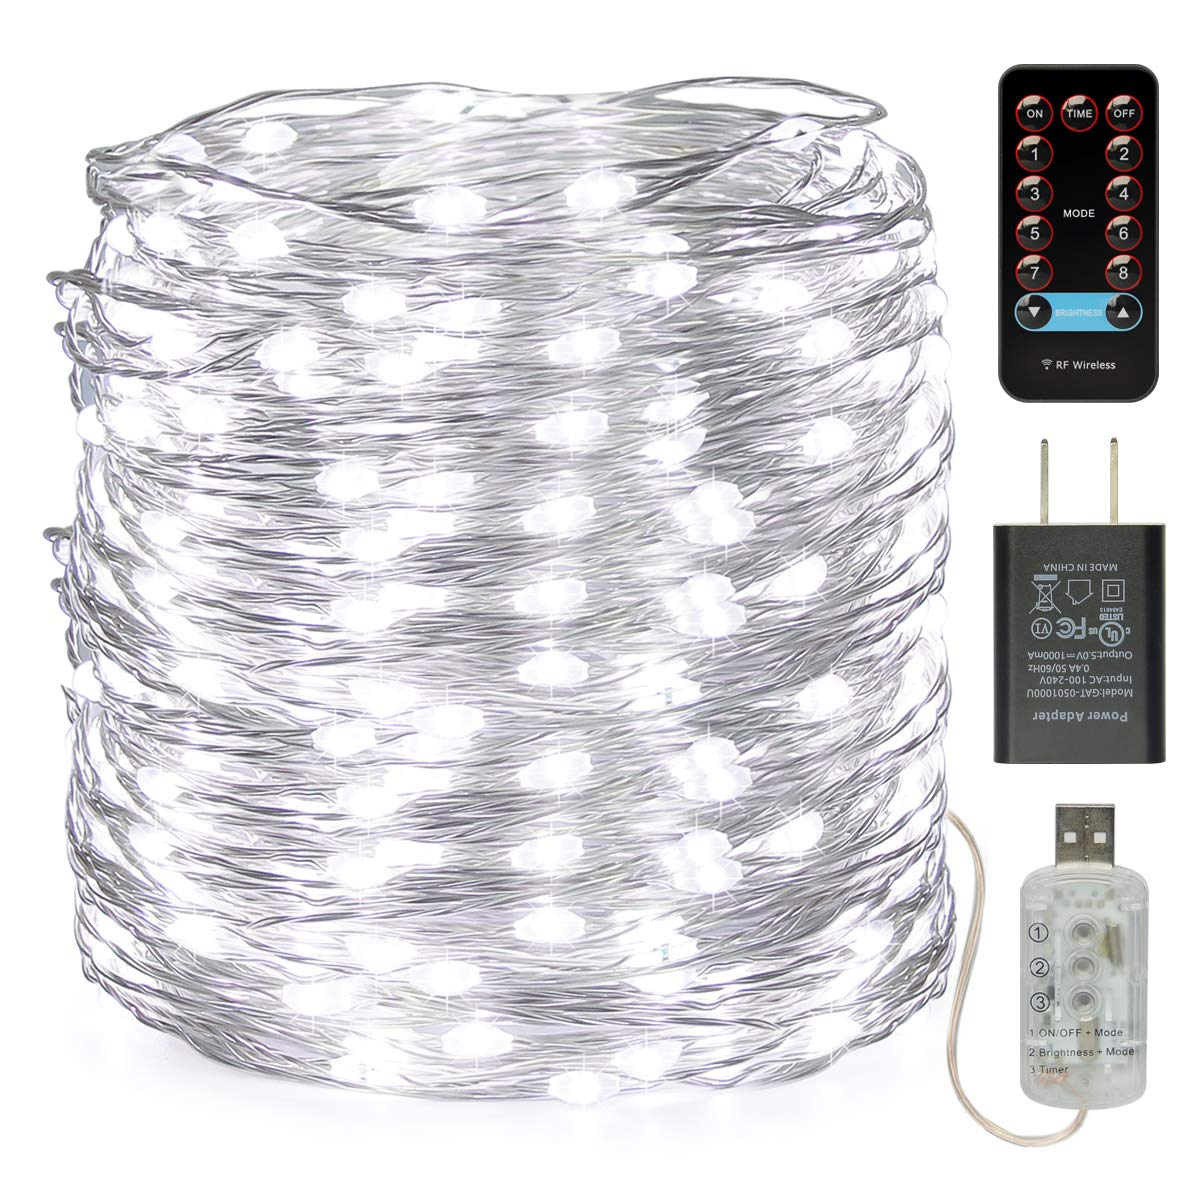 buways 66ft 200LEDs Fairy Lights - USB Plug-in Twinkle String Lights 8 Modes with RF Remote Control Halloween Christmas Party Weeding Garden Home Decoration (1, Silver Cool White-66ft)